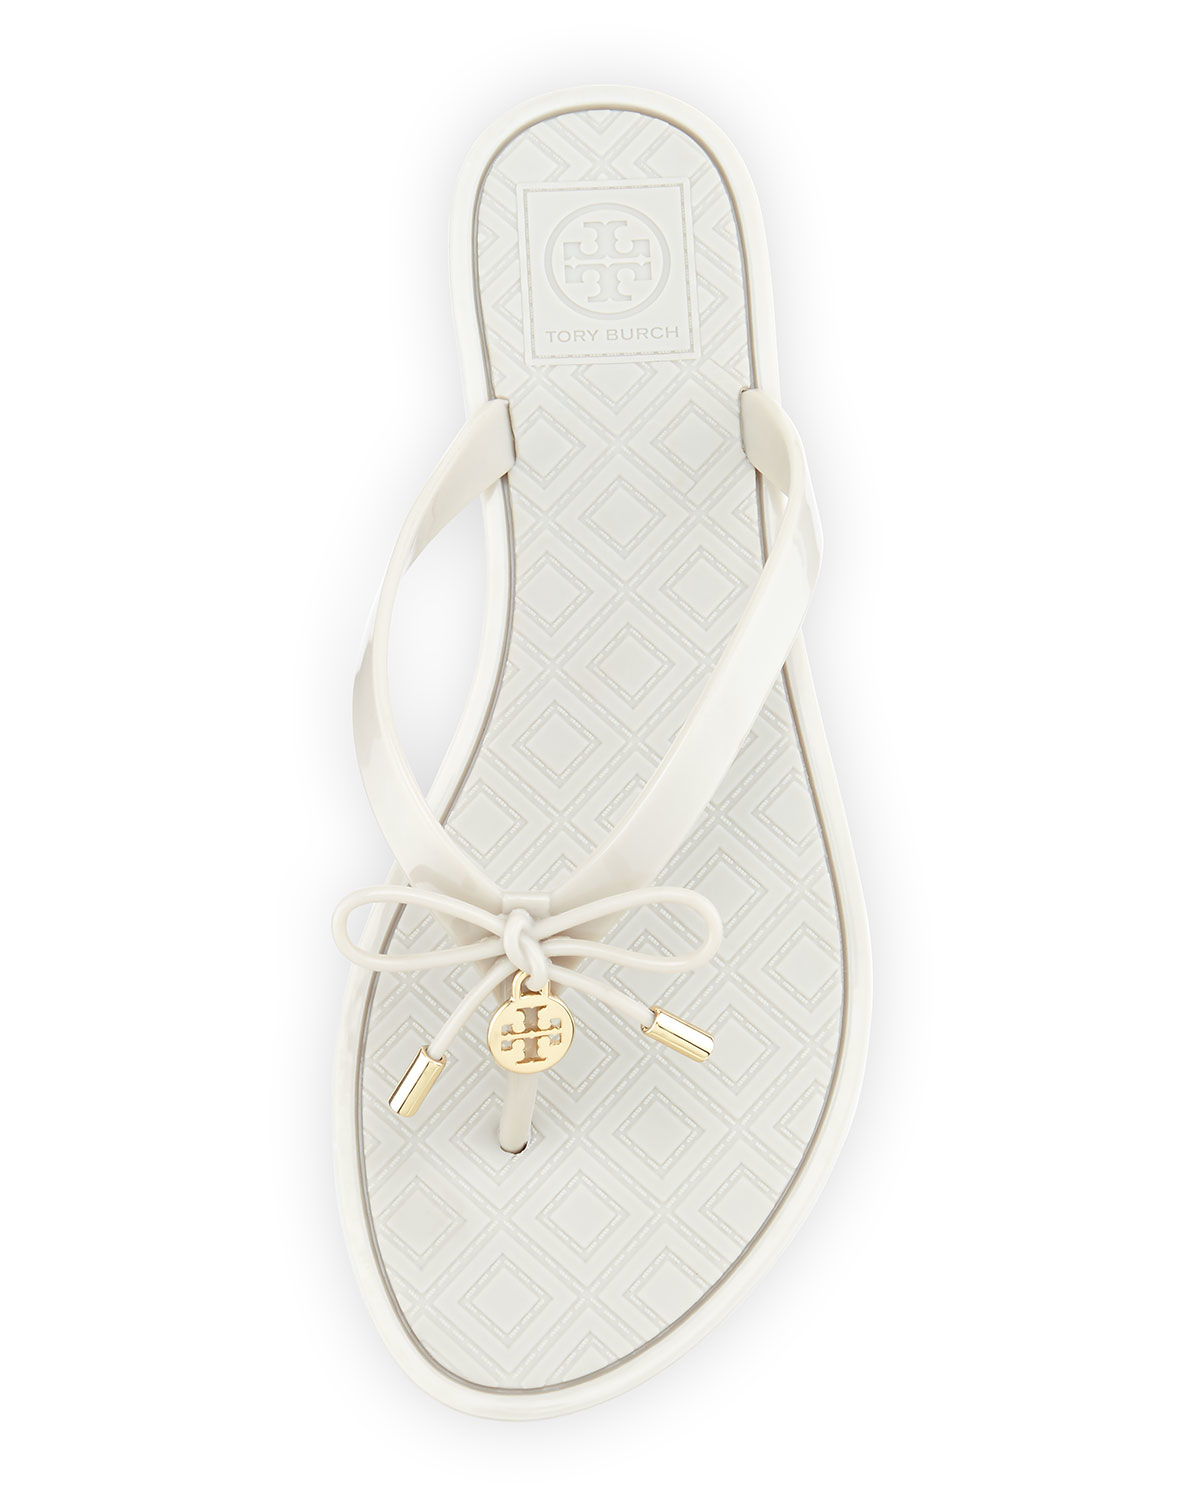 4bf0b2fa1493b Tory Burch Jelly Bow Logo-Charm Thong Sandals in White - Lyst